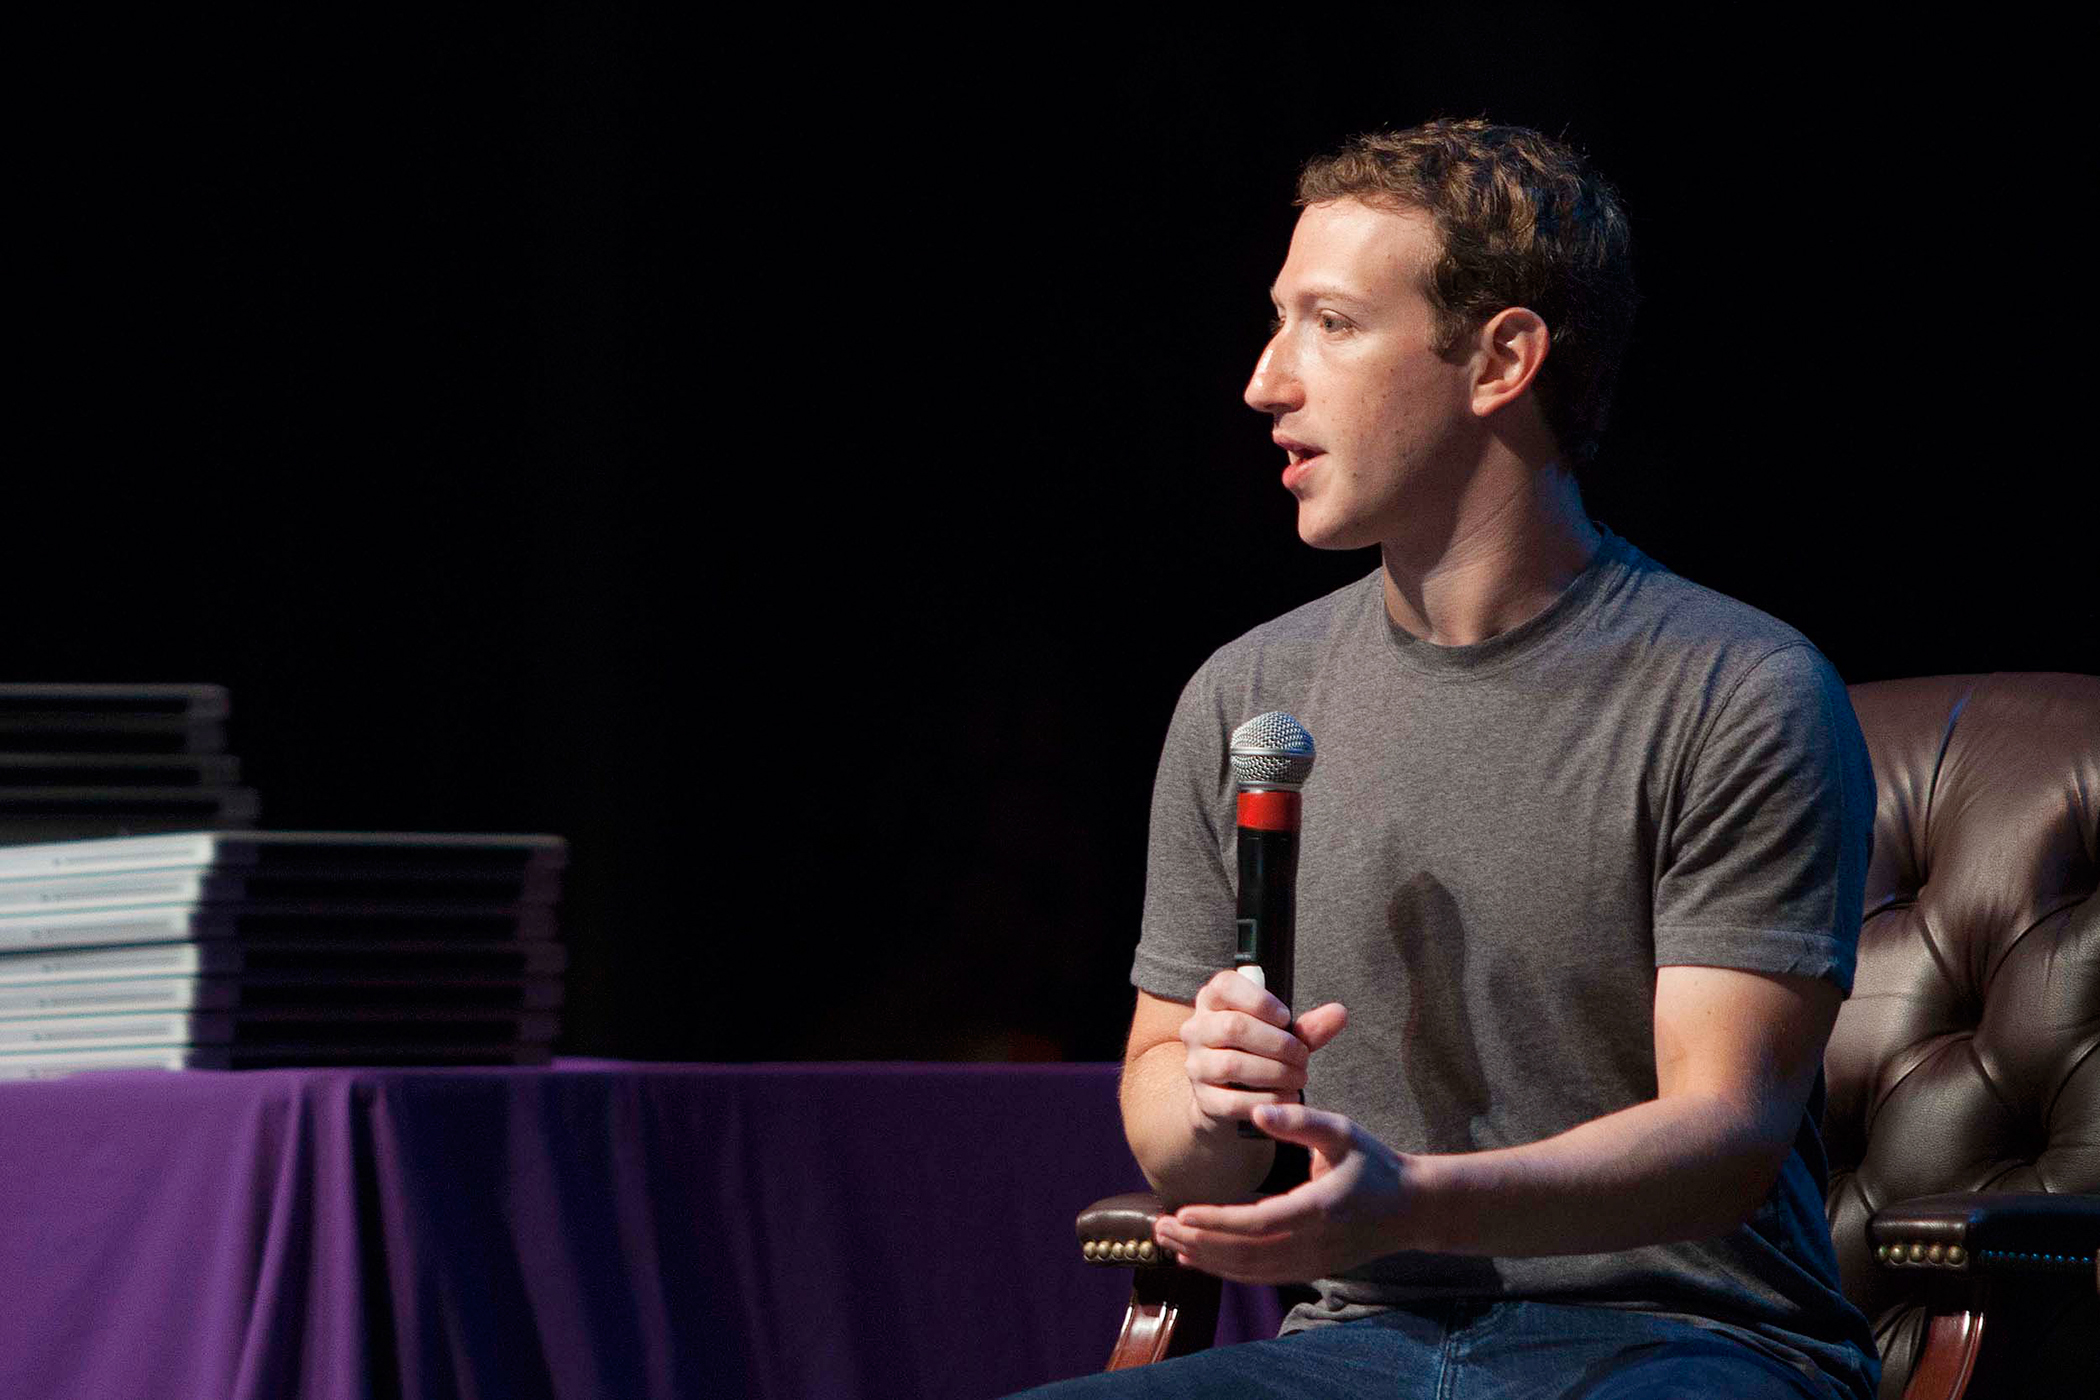 In a Thursday, Sept. 18, 2014 file photo, Facebook CEO Mark Zuckerberg speaks to students during an special assembly at Sequoia High School in Redwood City, Calif.